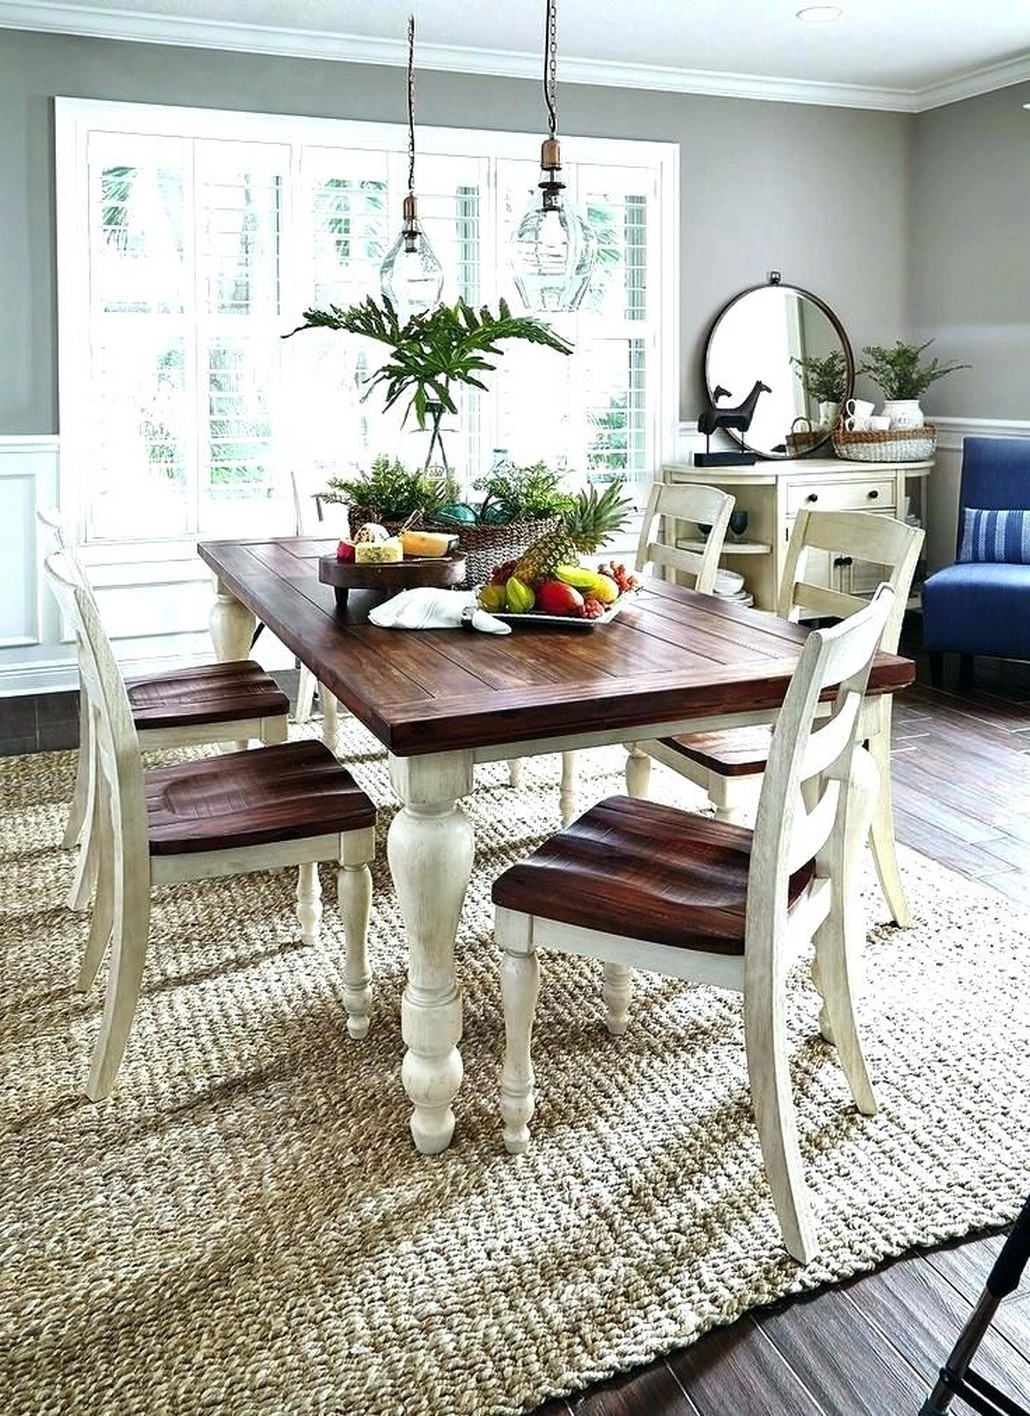 First Idea of Dining Room Design Inspiration